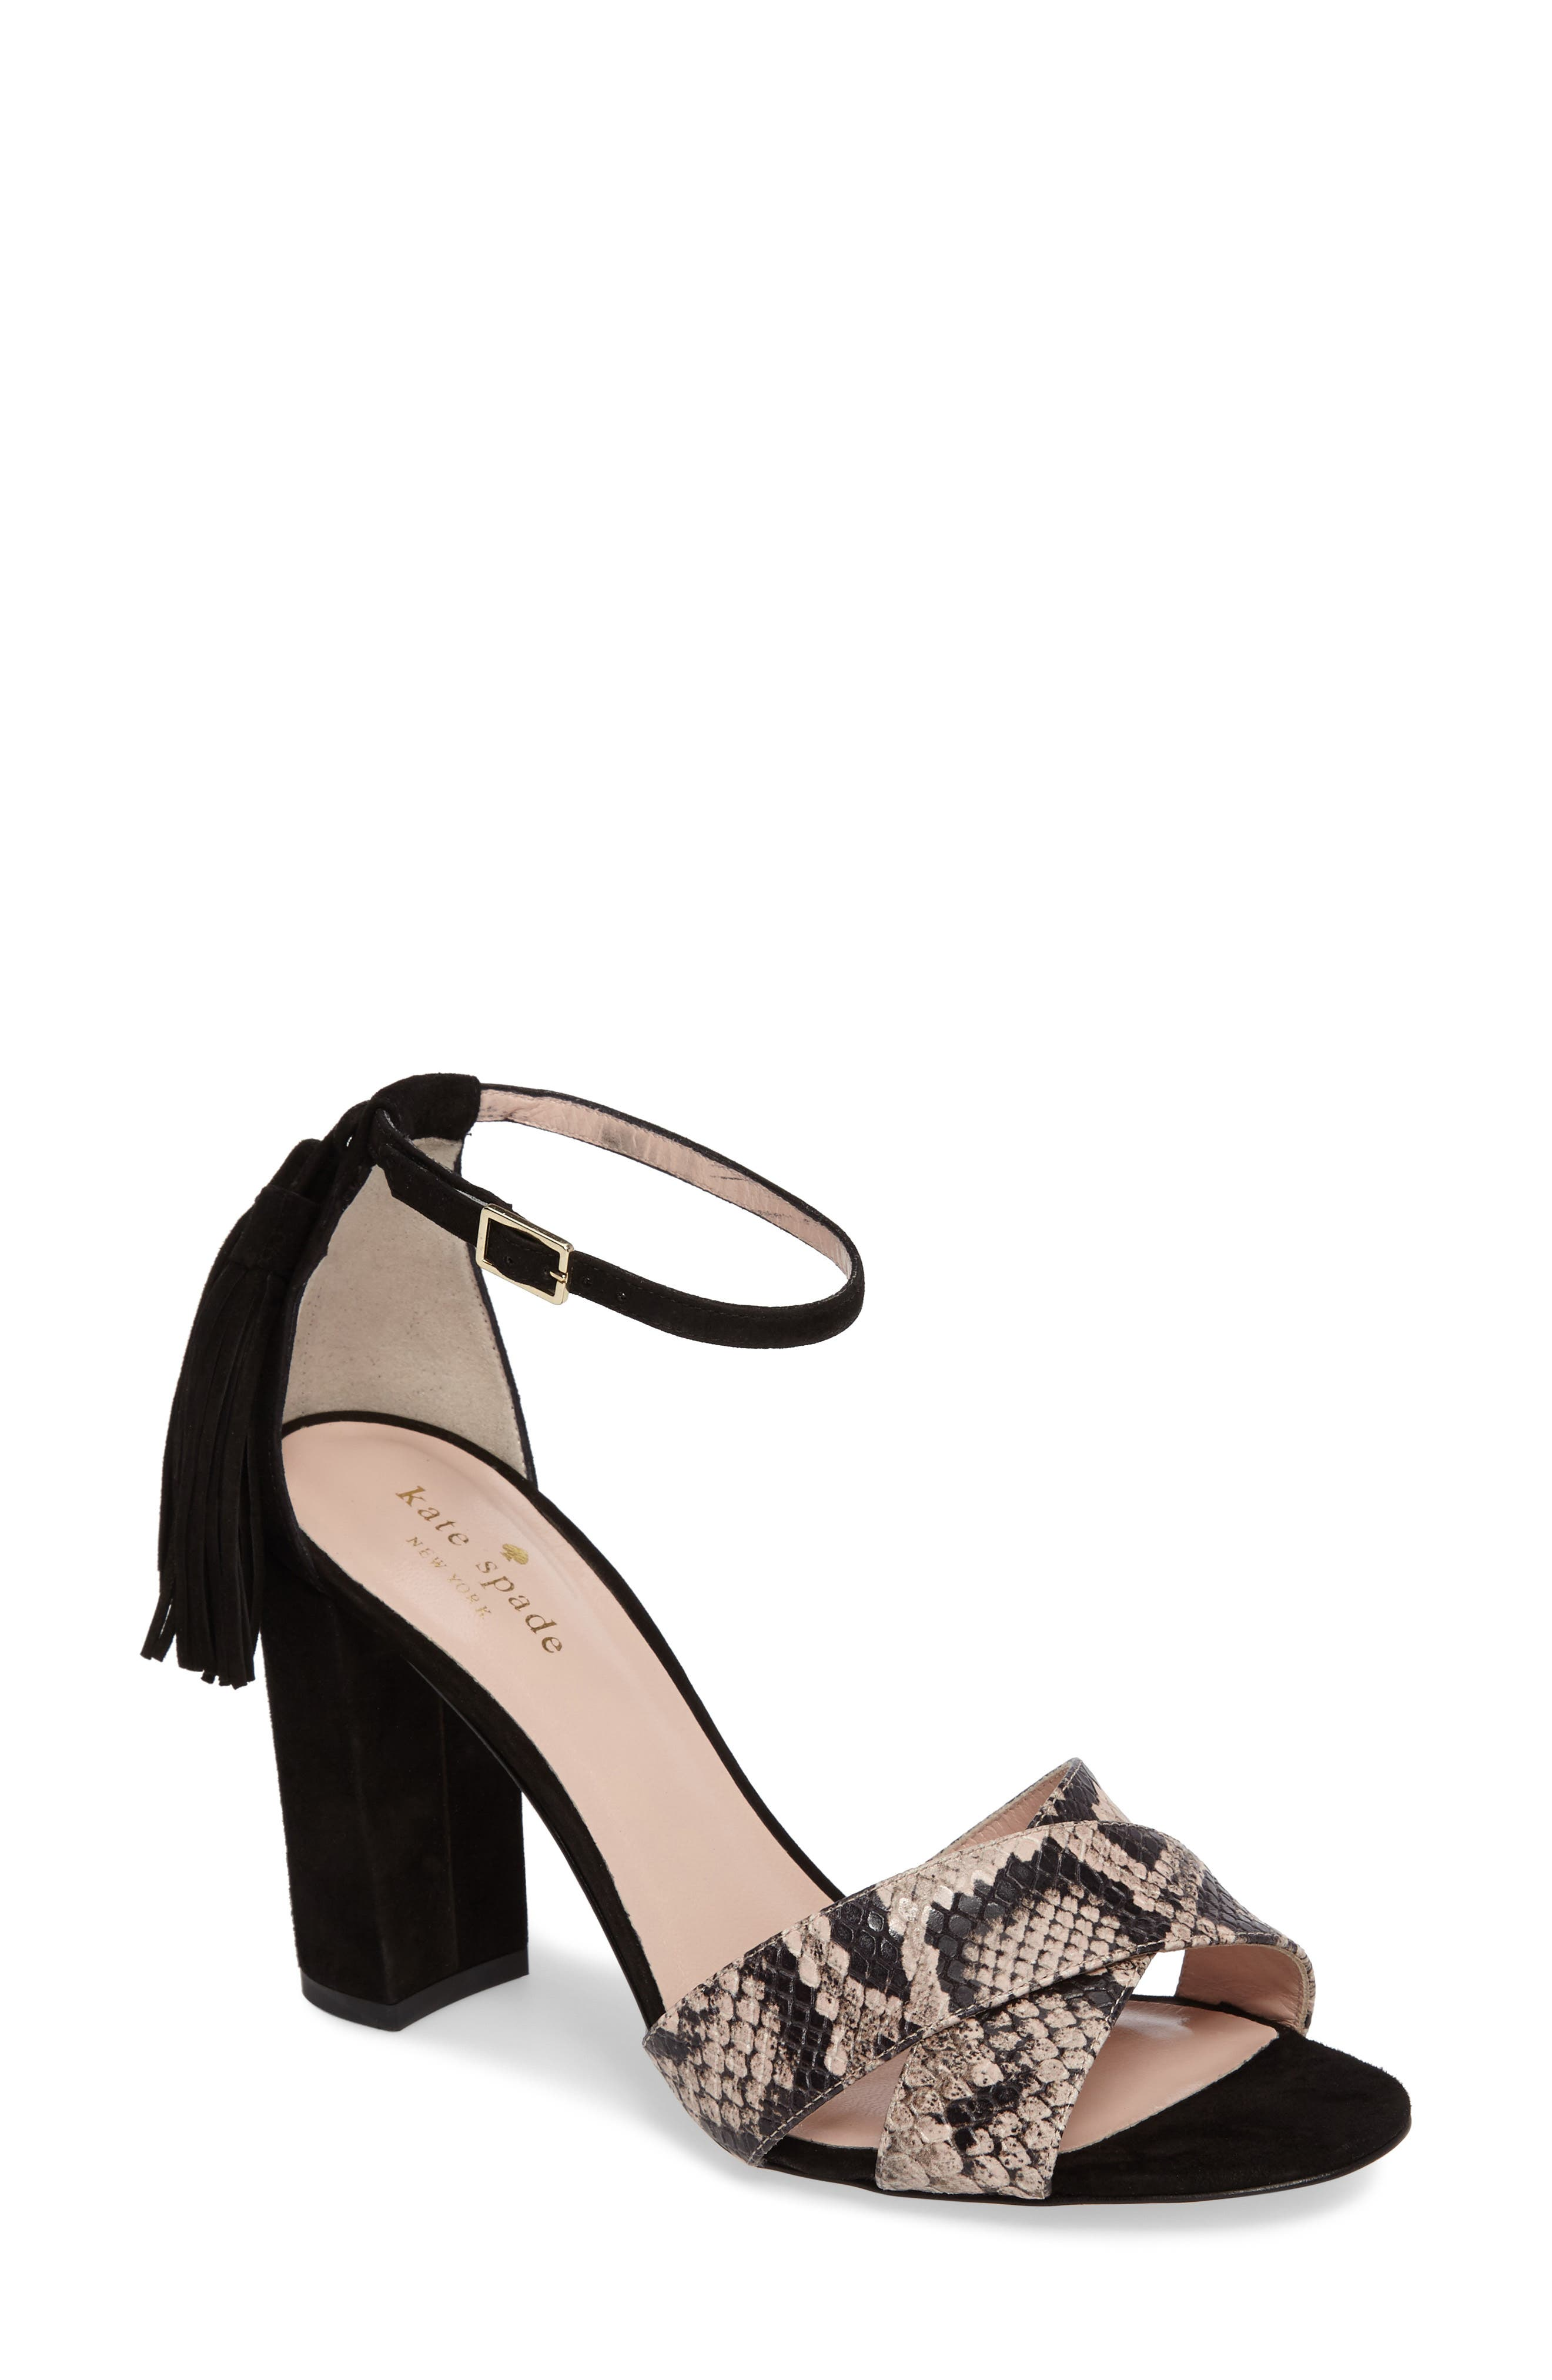 kate spade new york idanna sandal (Women)